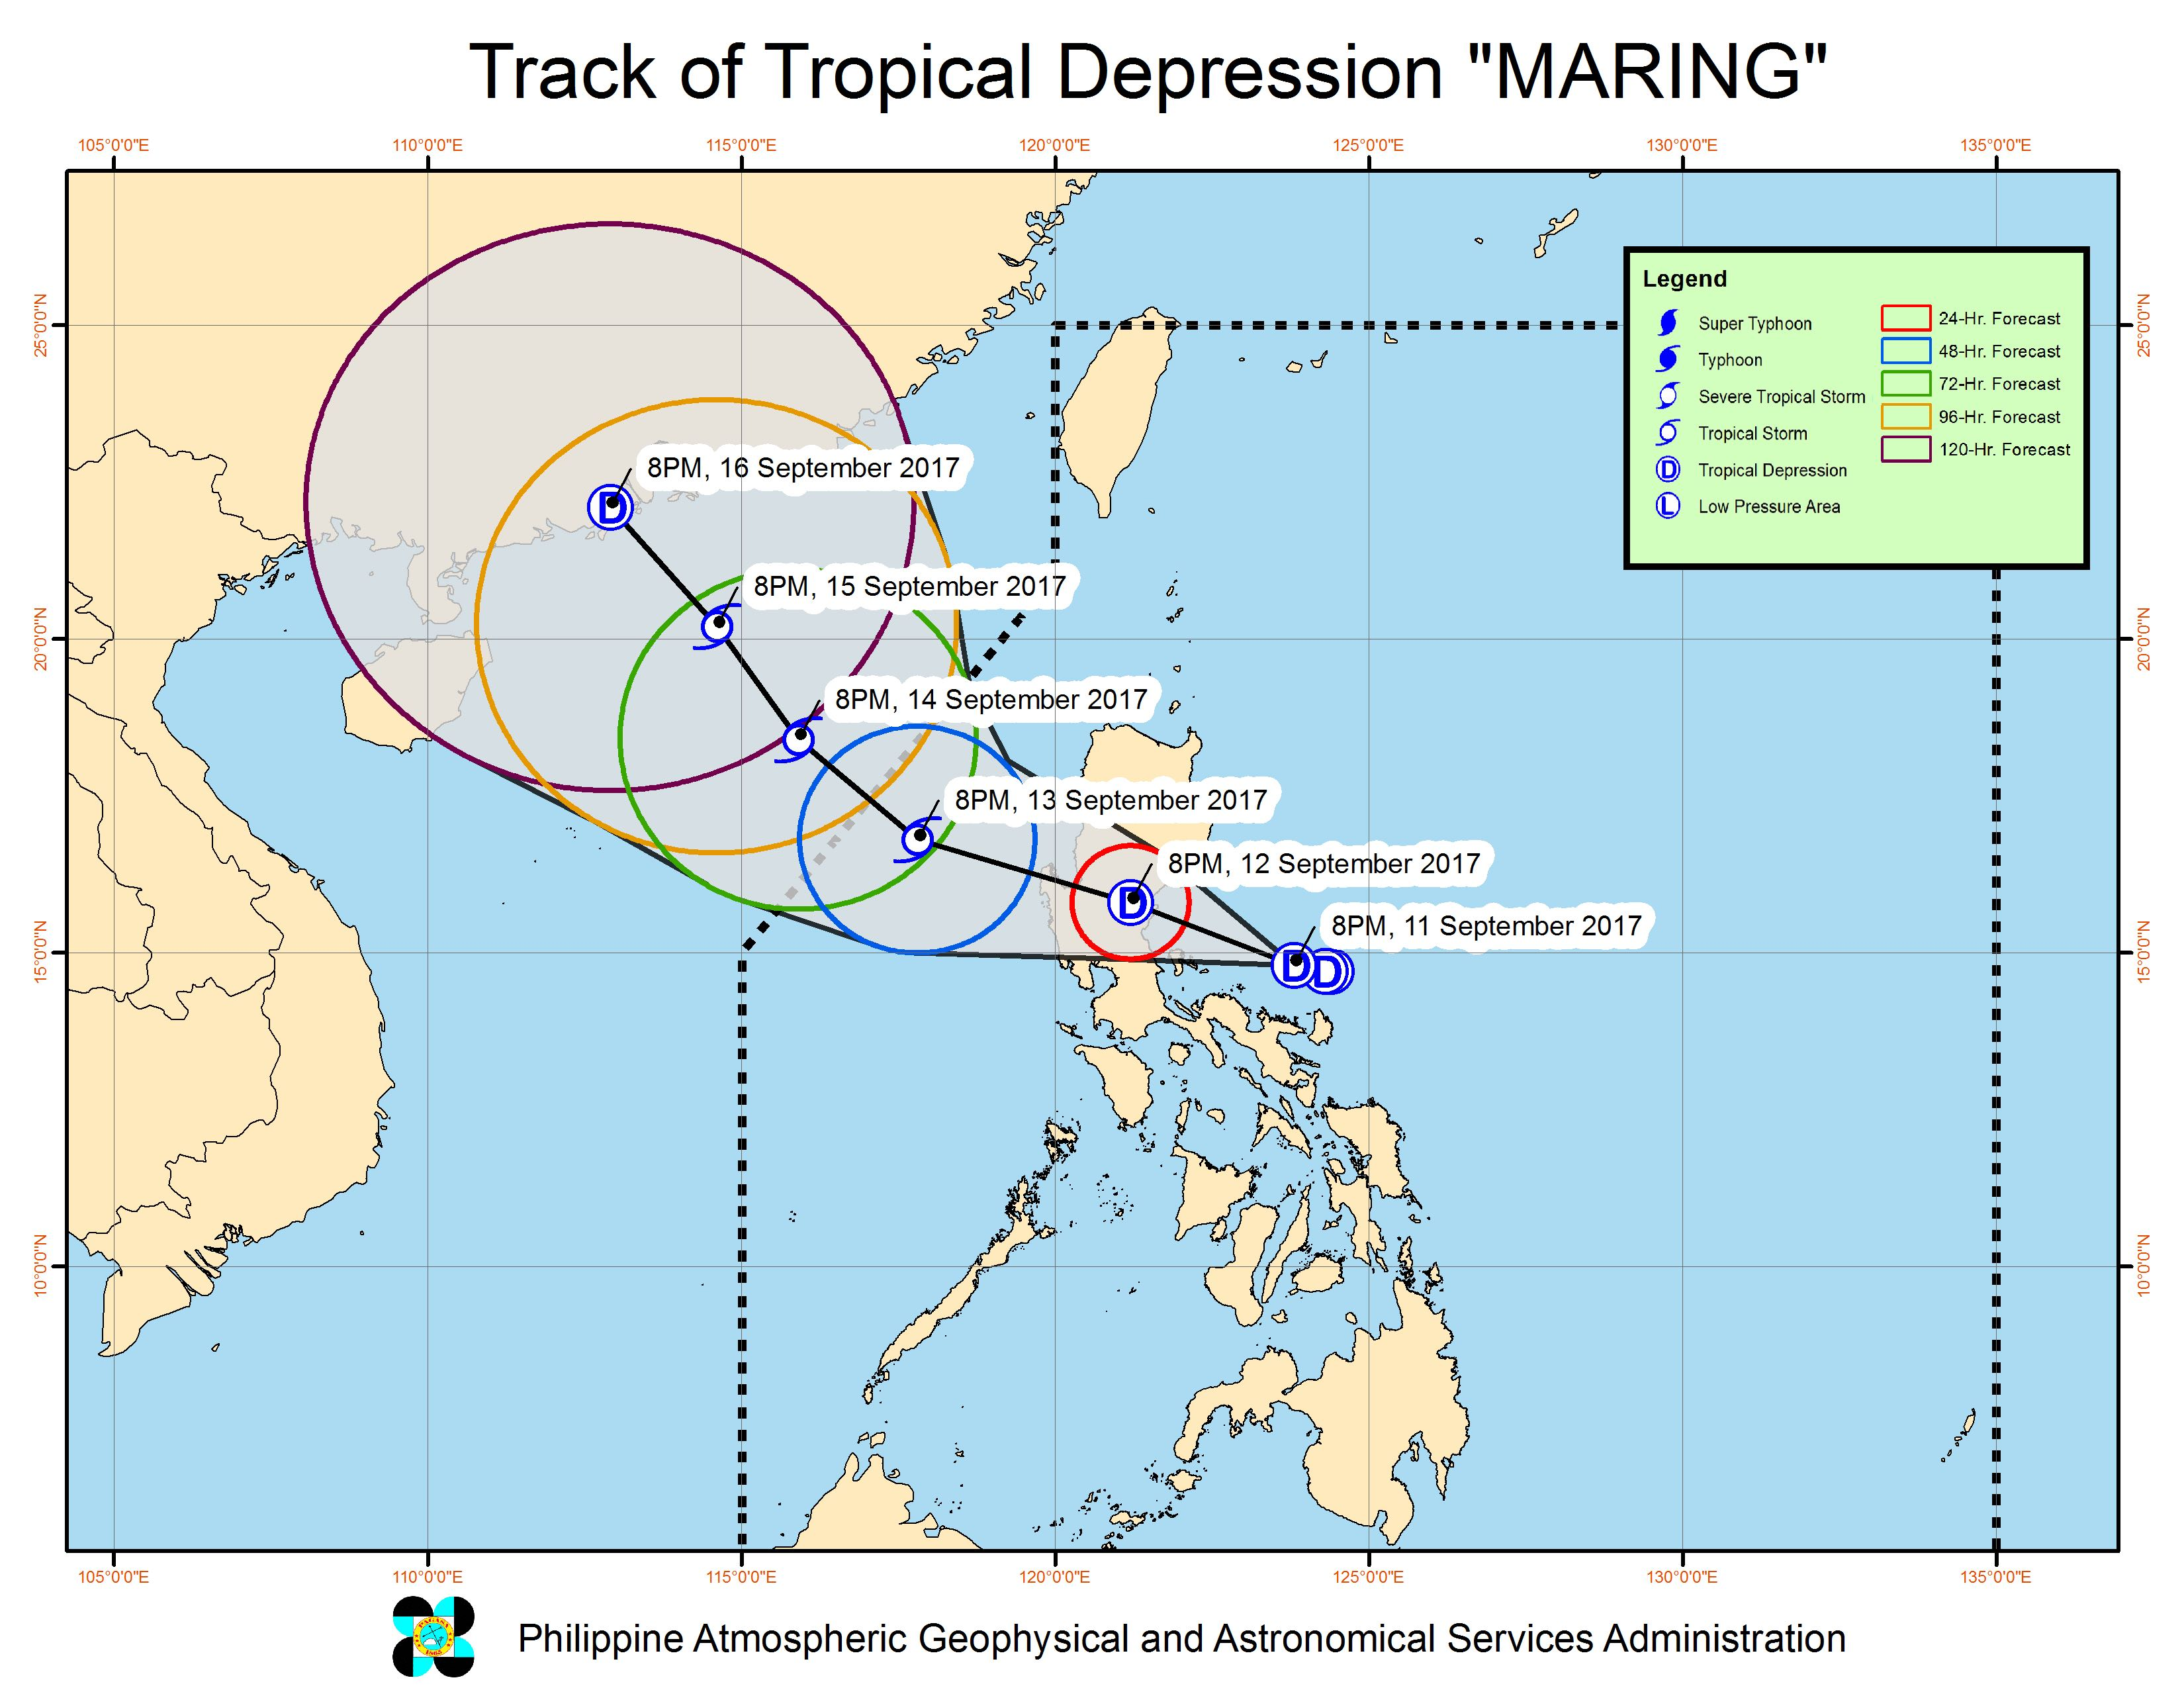 Forecast track of Tropical Depression Maring as of September 11, 11 pm. Image courtesy of PAGASA